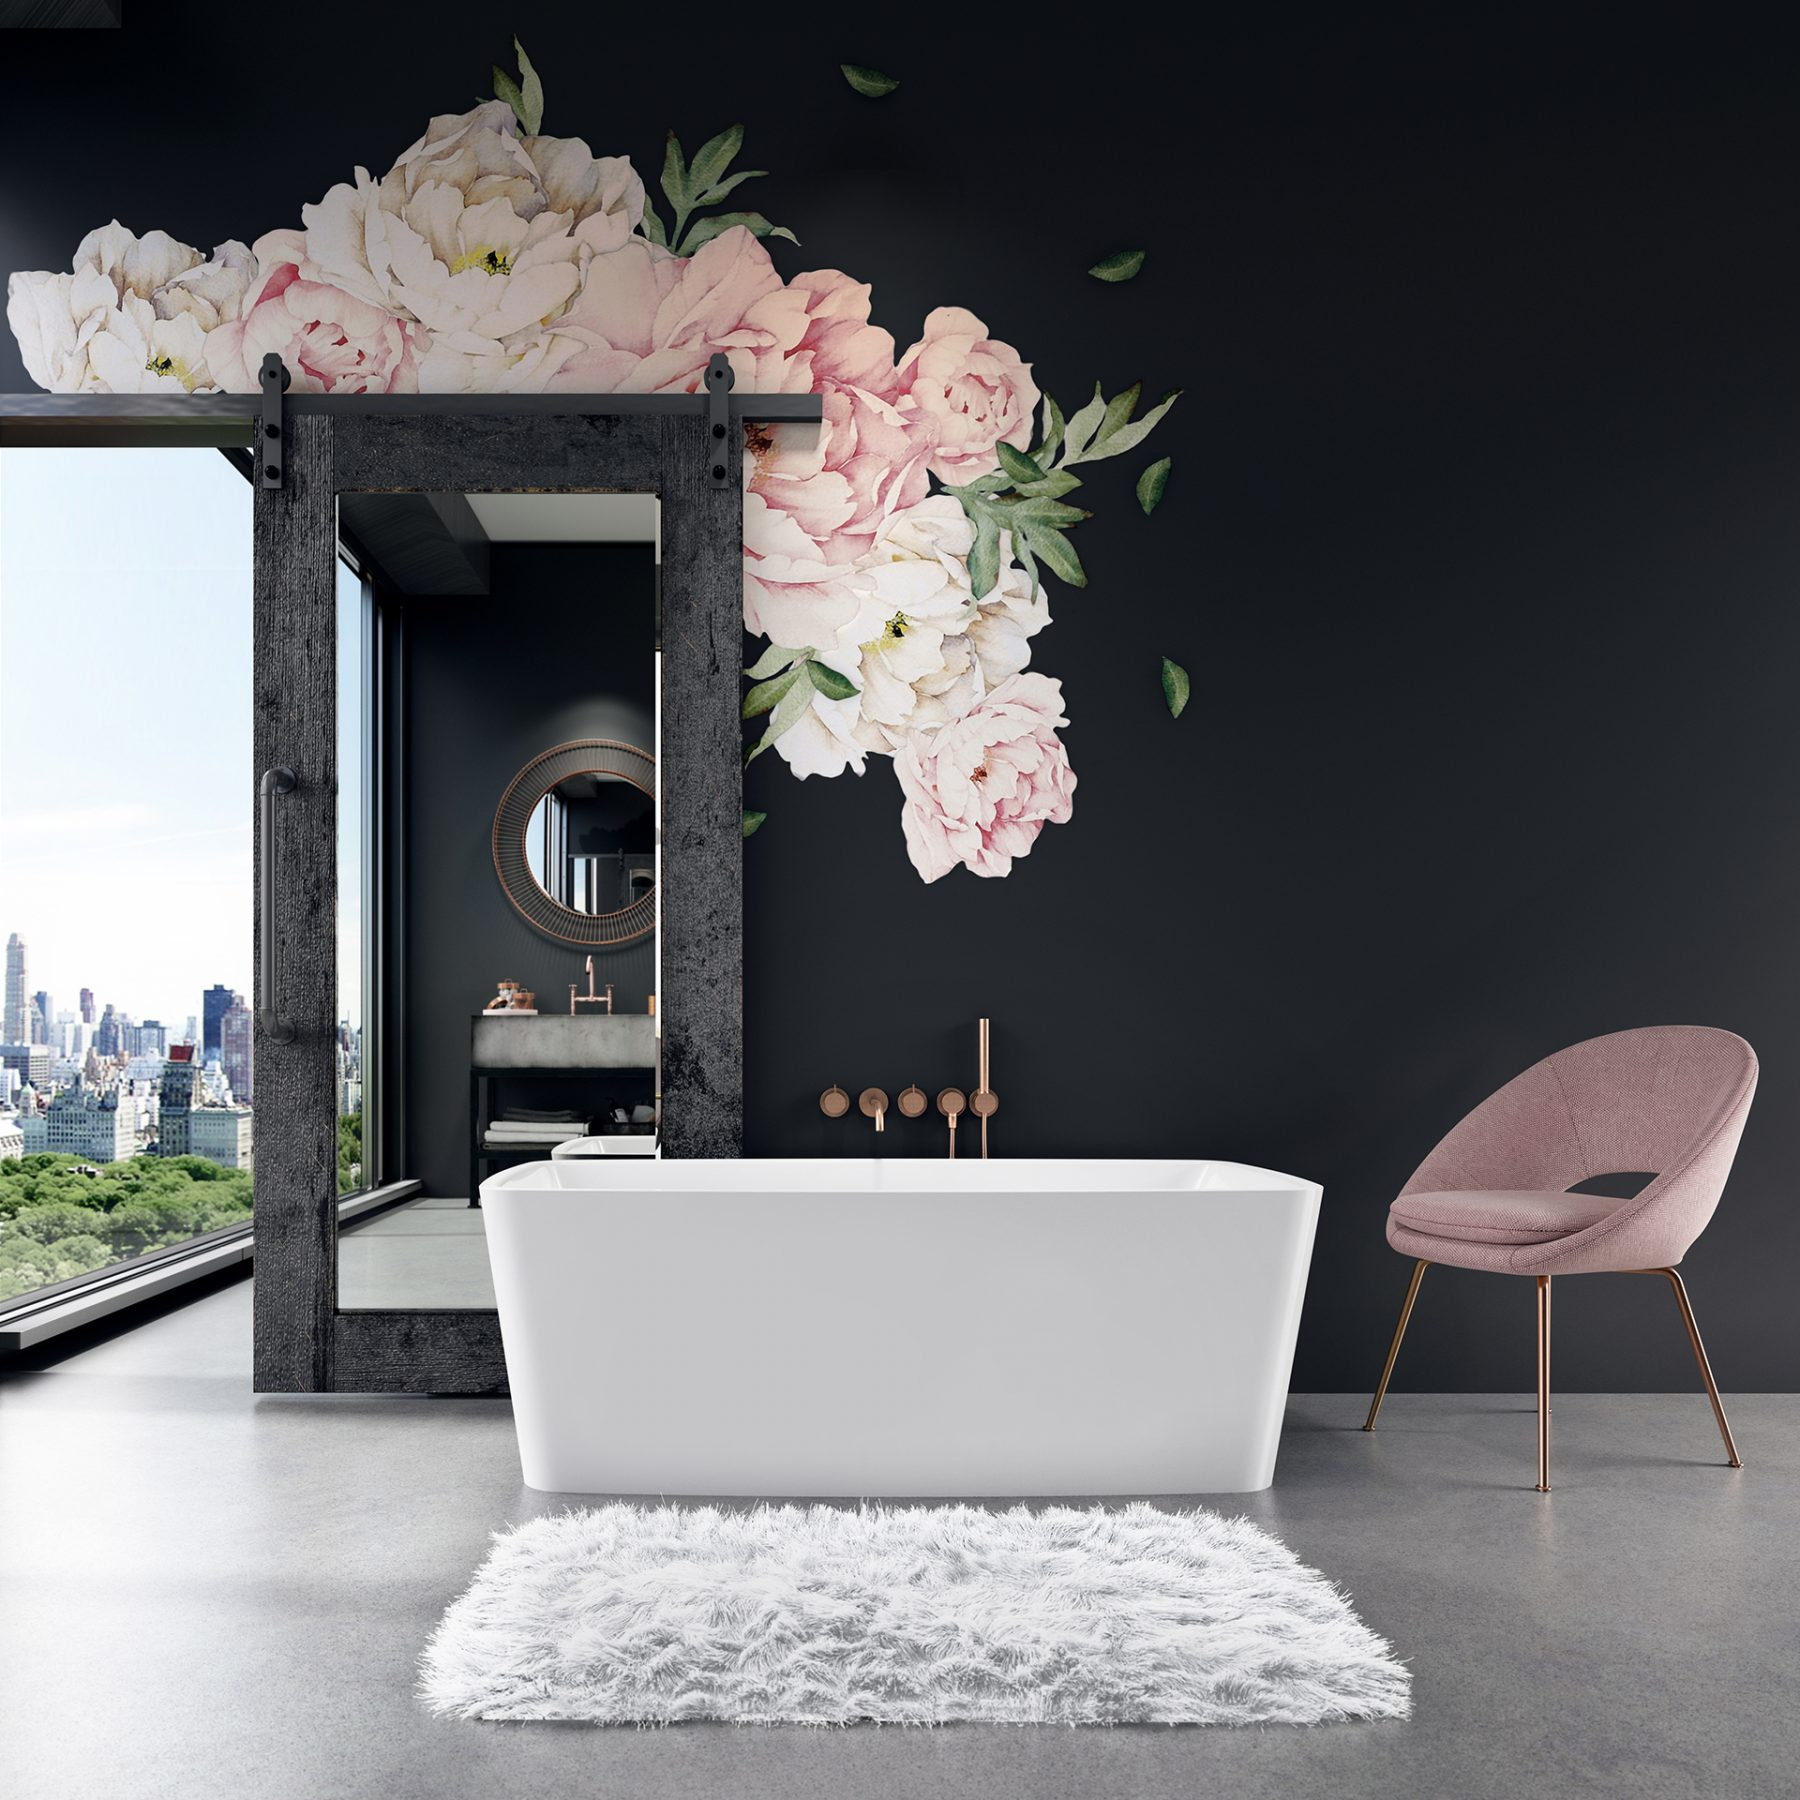 3d-black-design-pink-flower-bathroom-tub-hair-and-fur